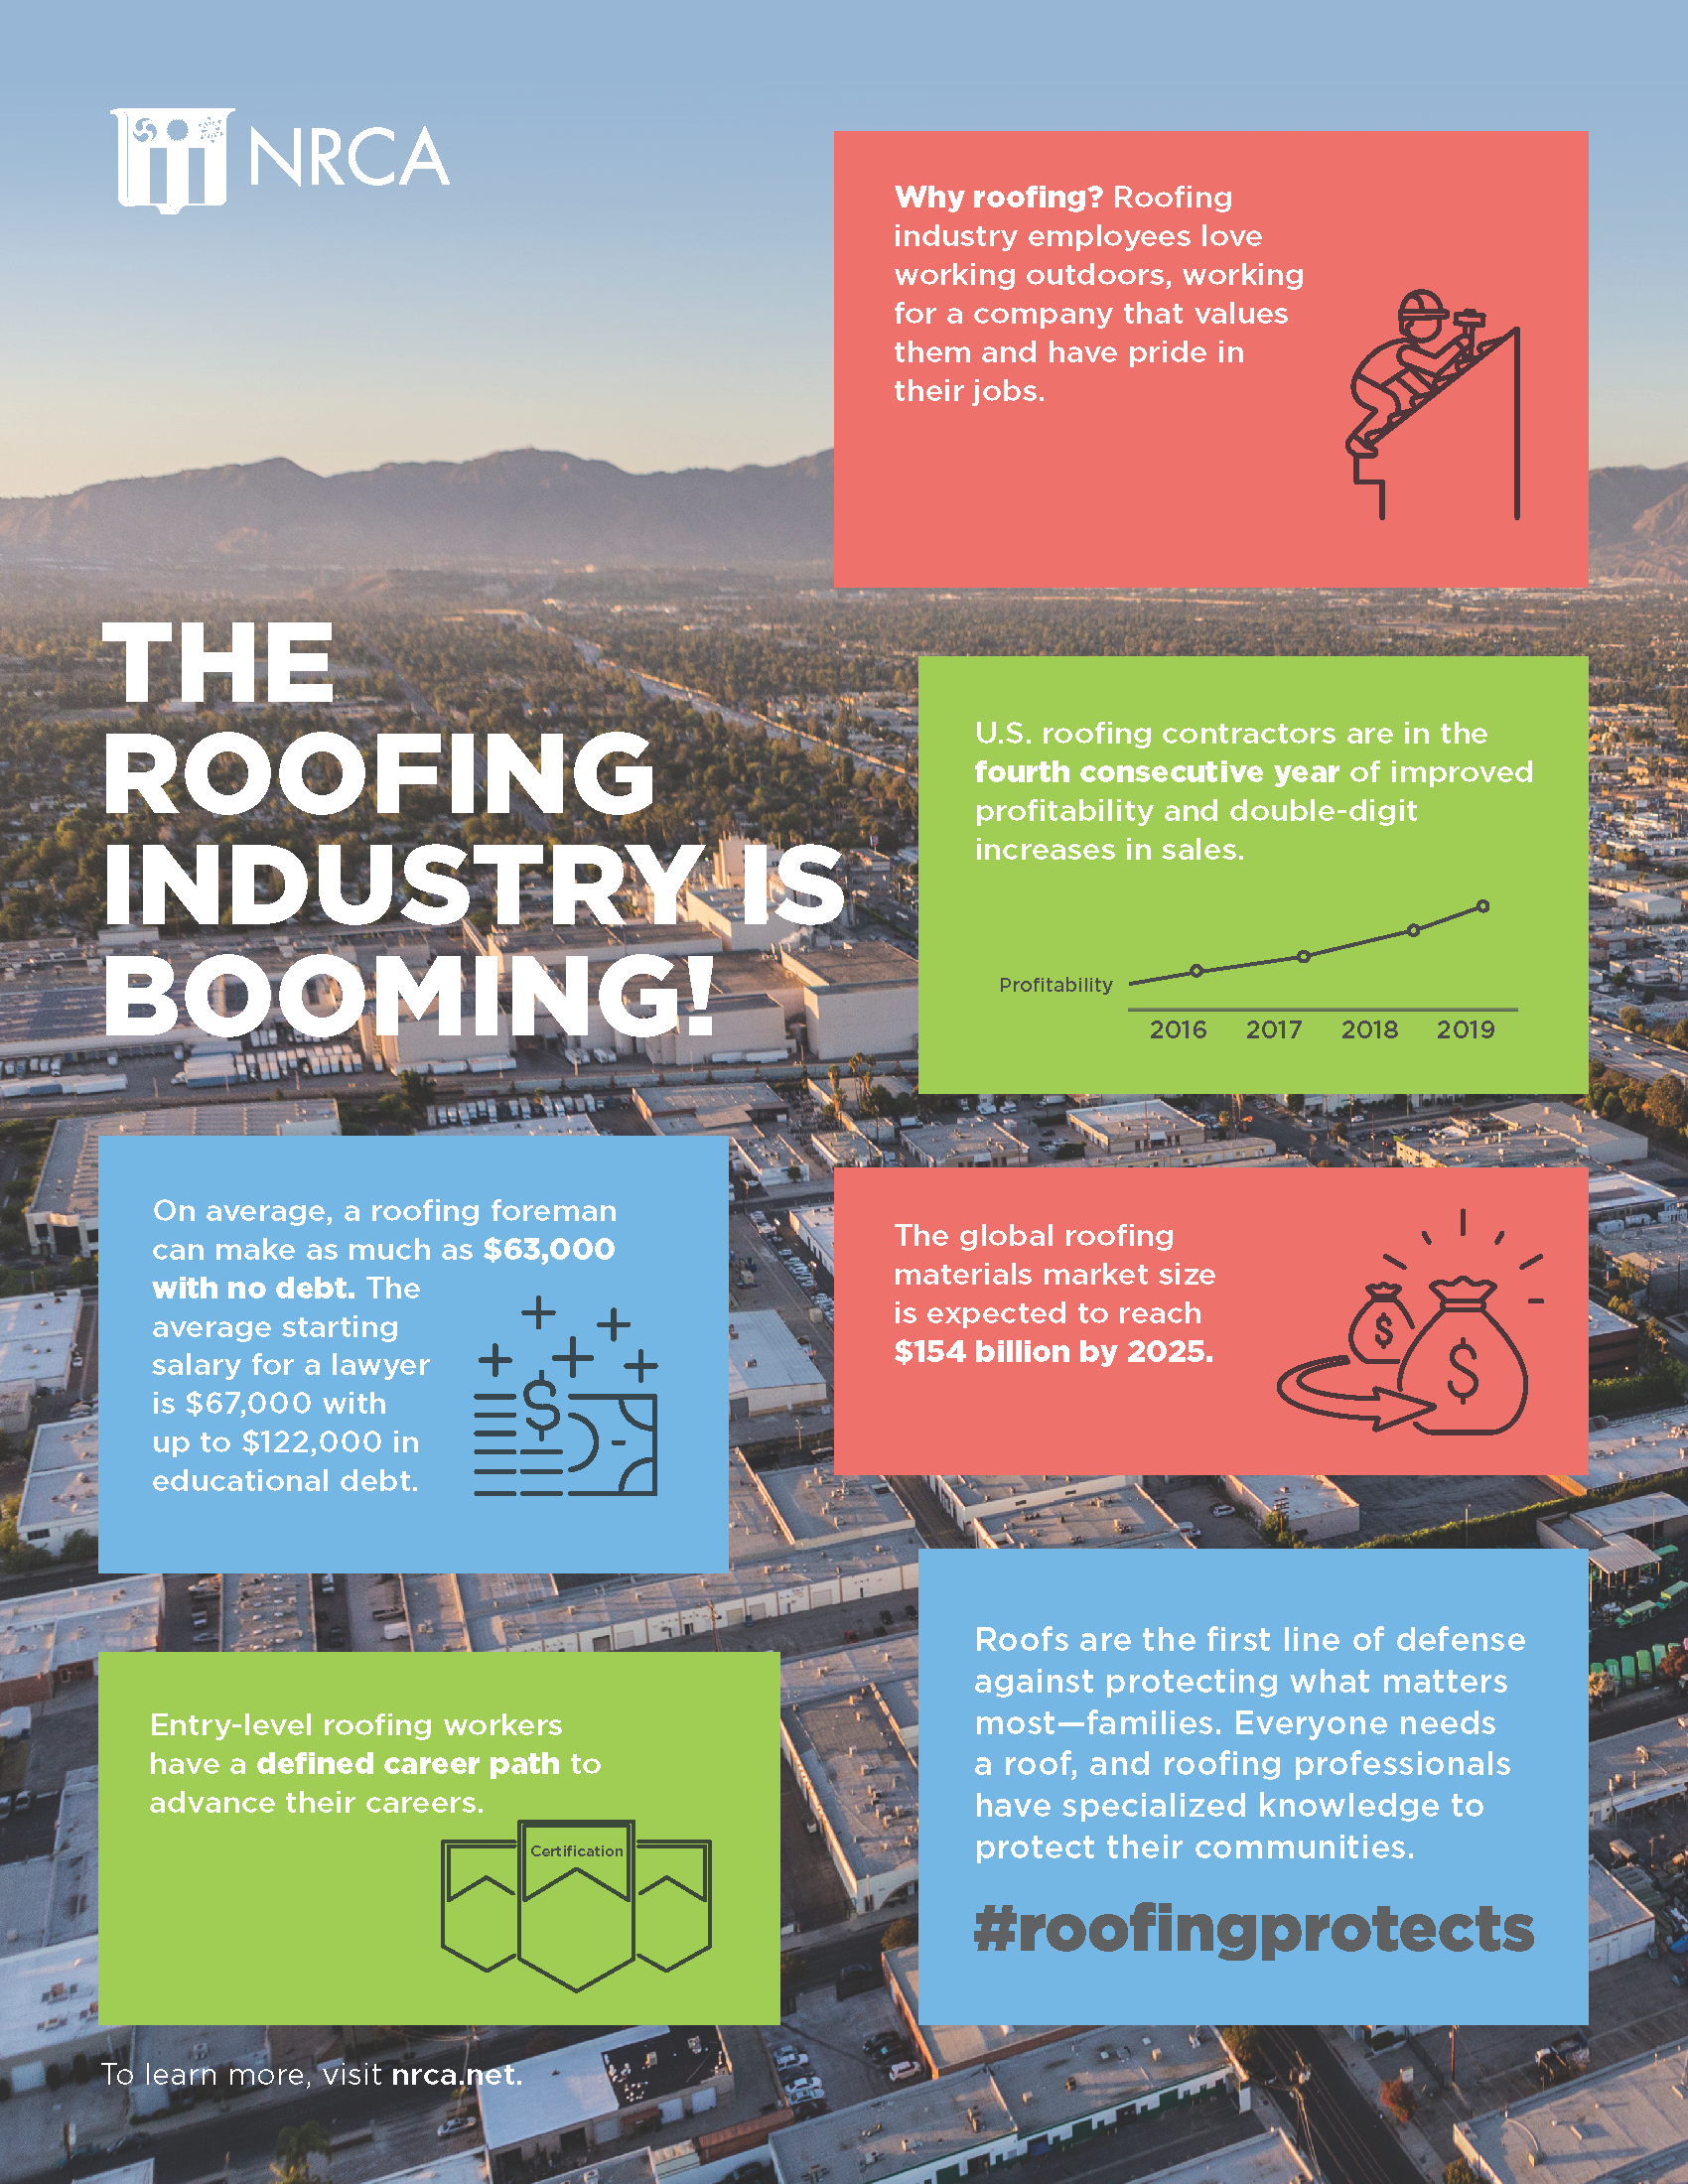 The Roofing Industry is Booming! (General)